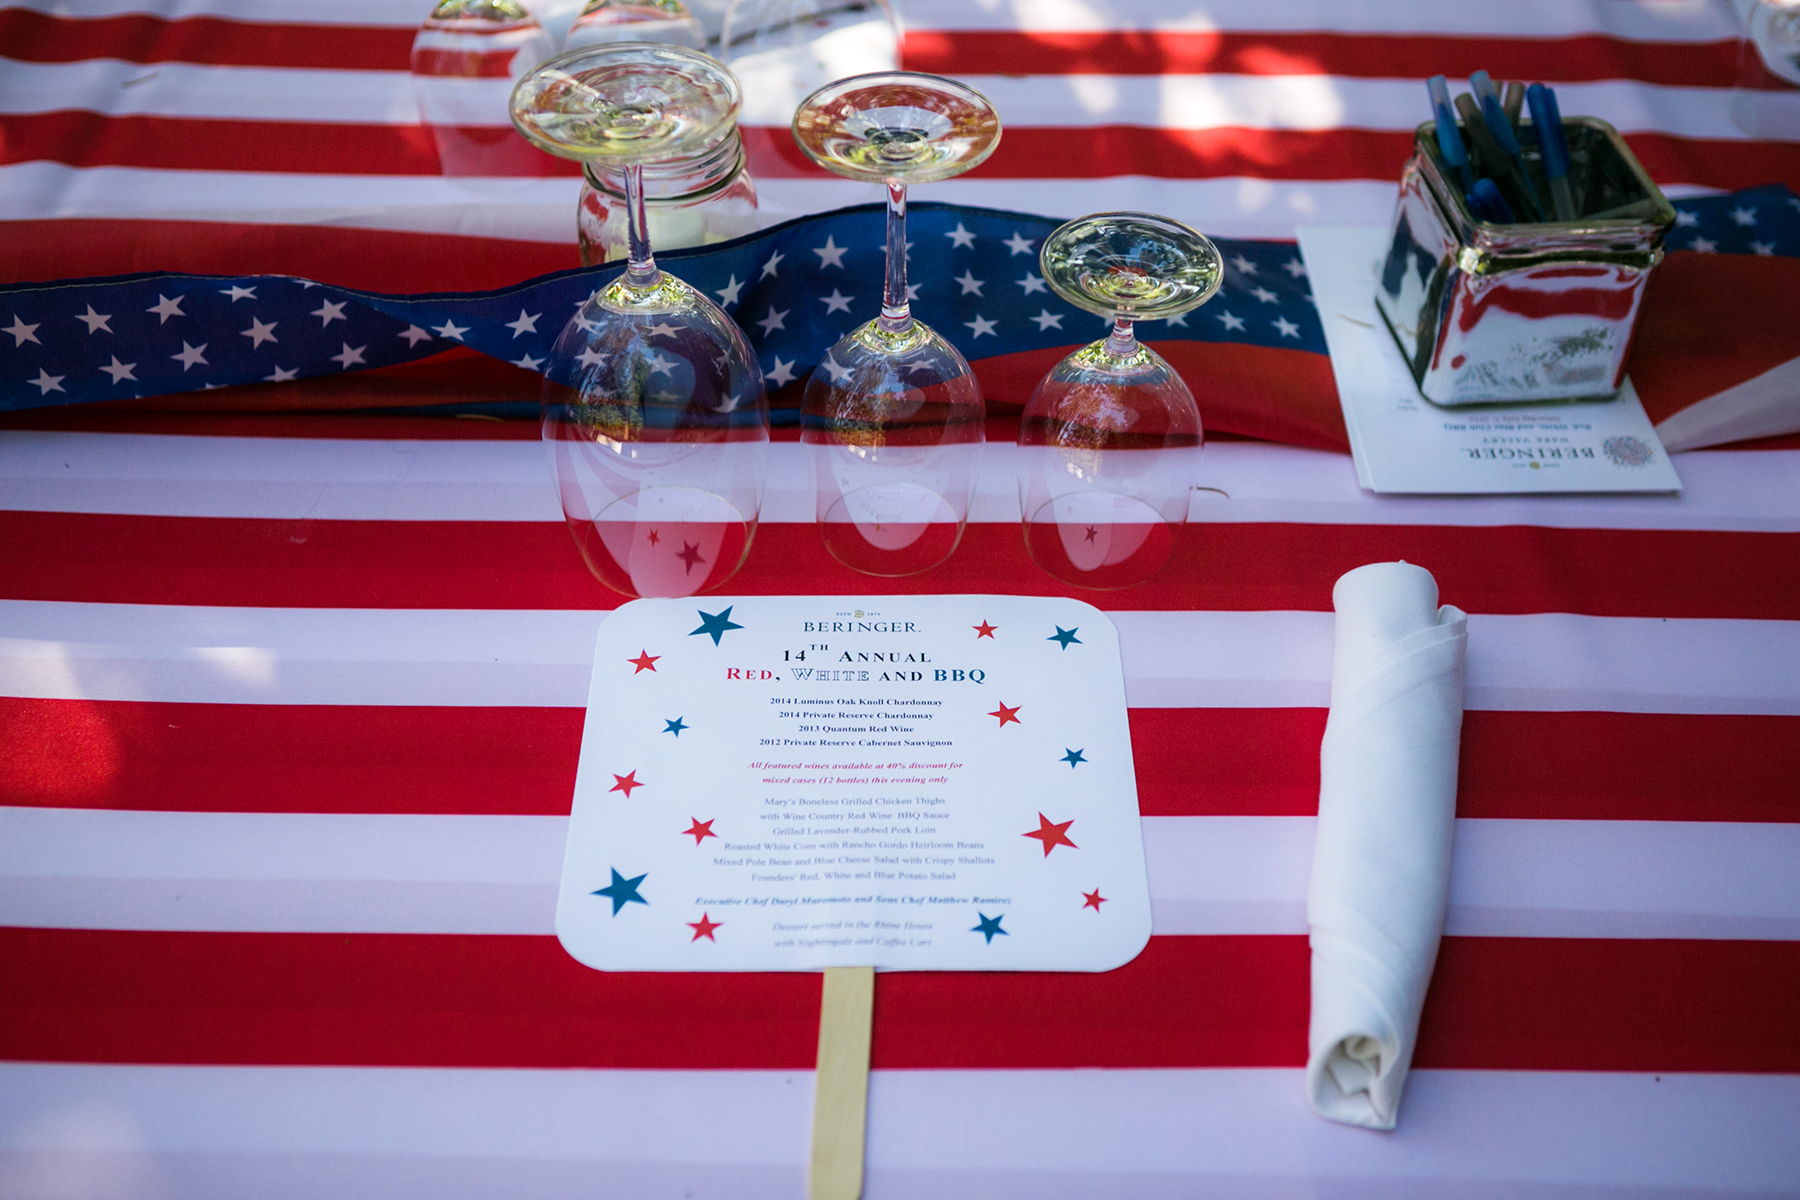 beringer-winery-wine-napa-sonoma-6-events